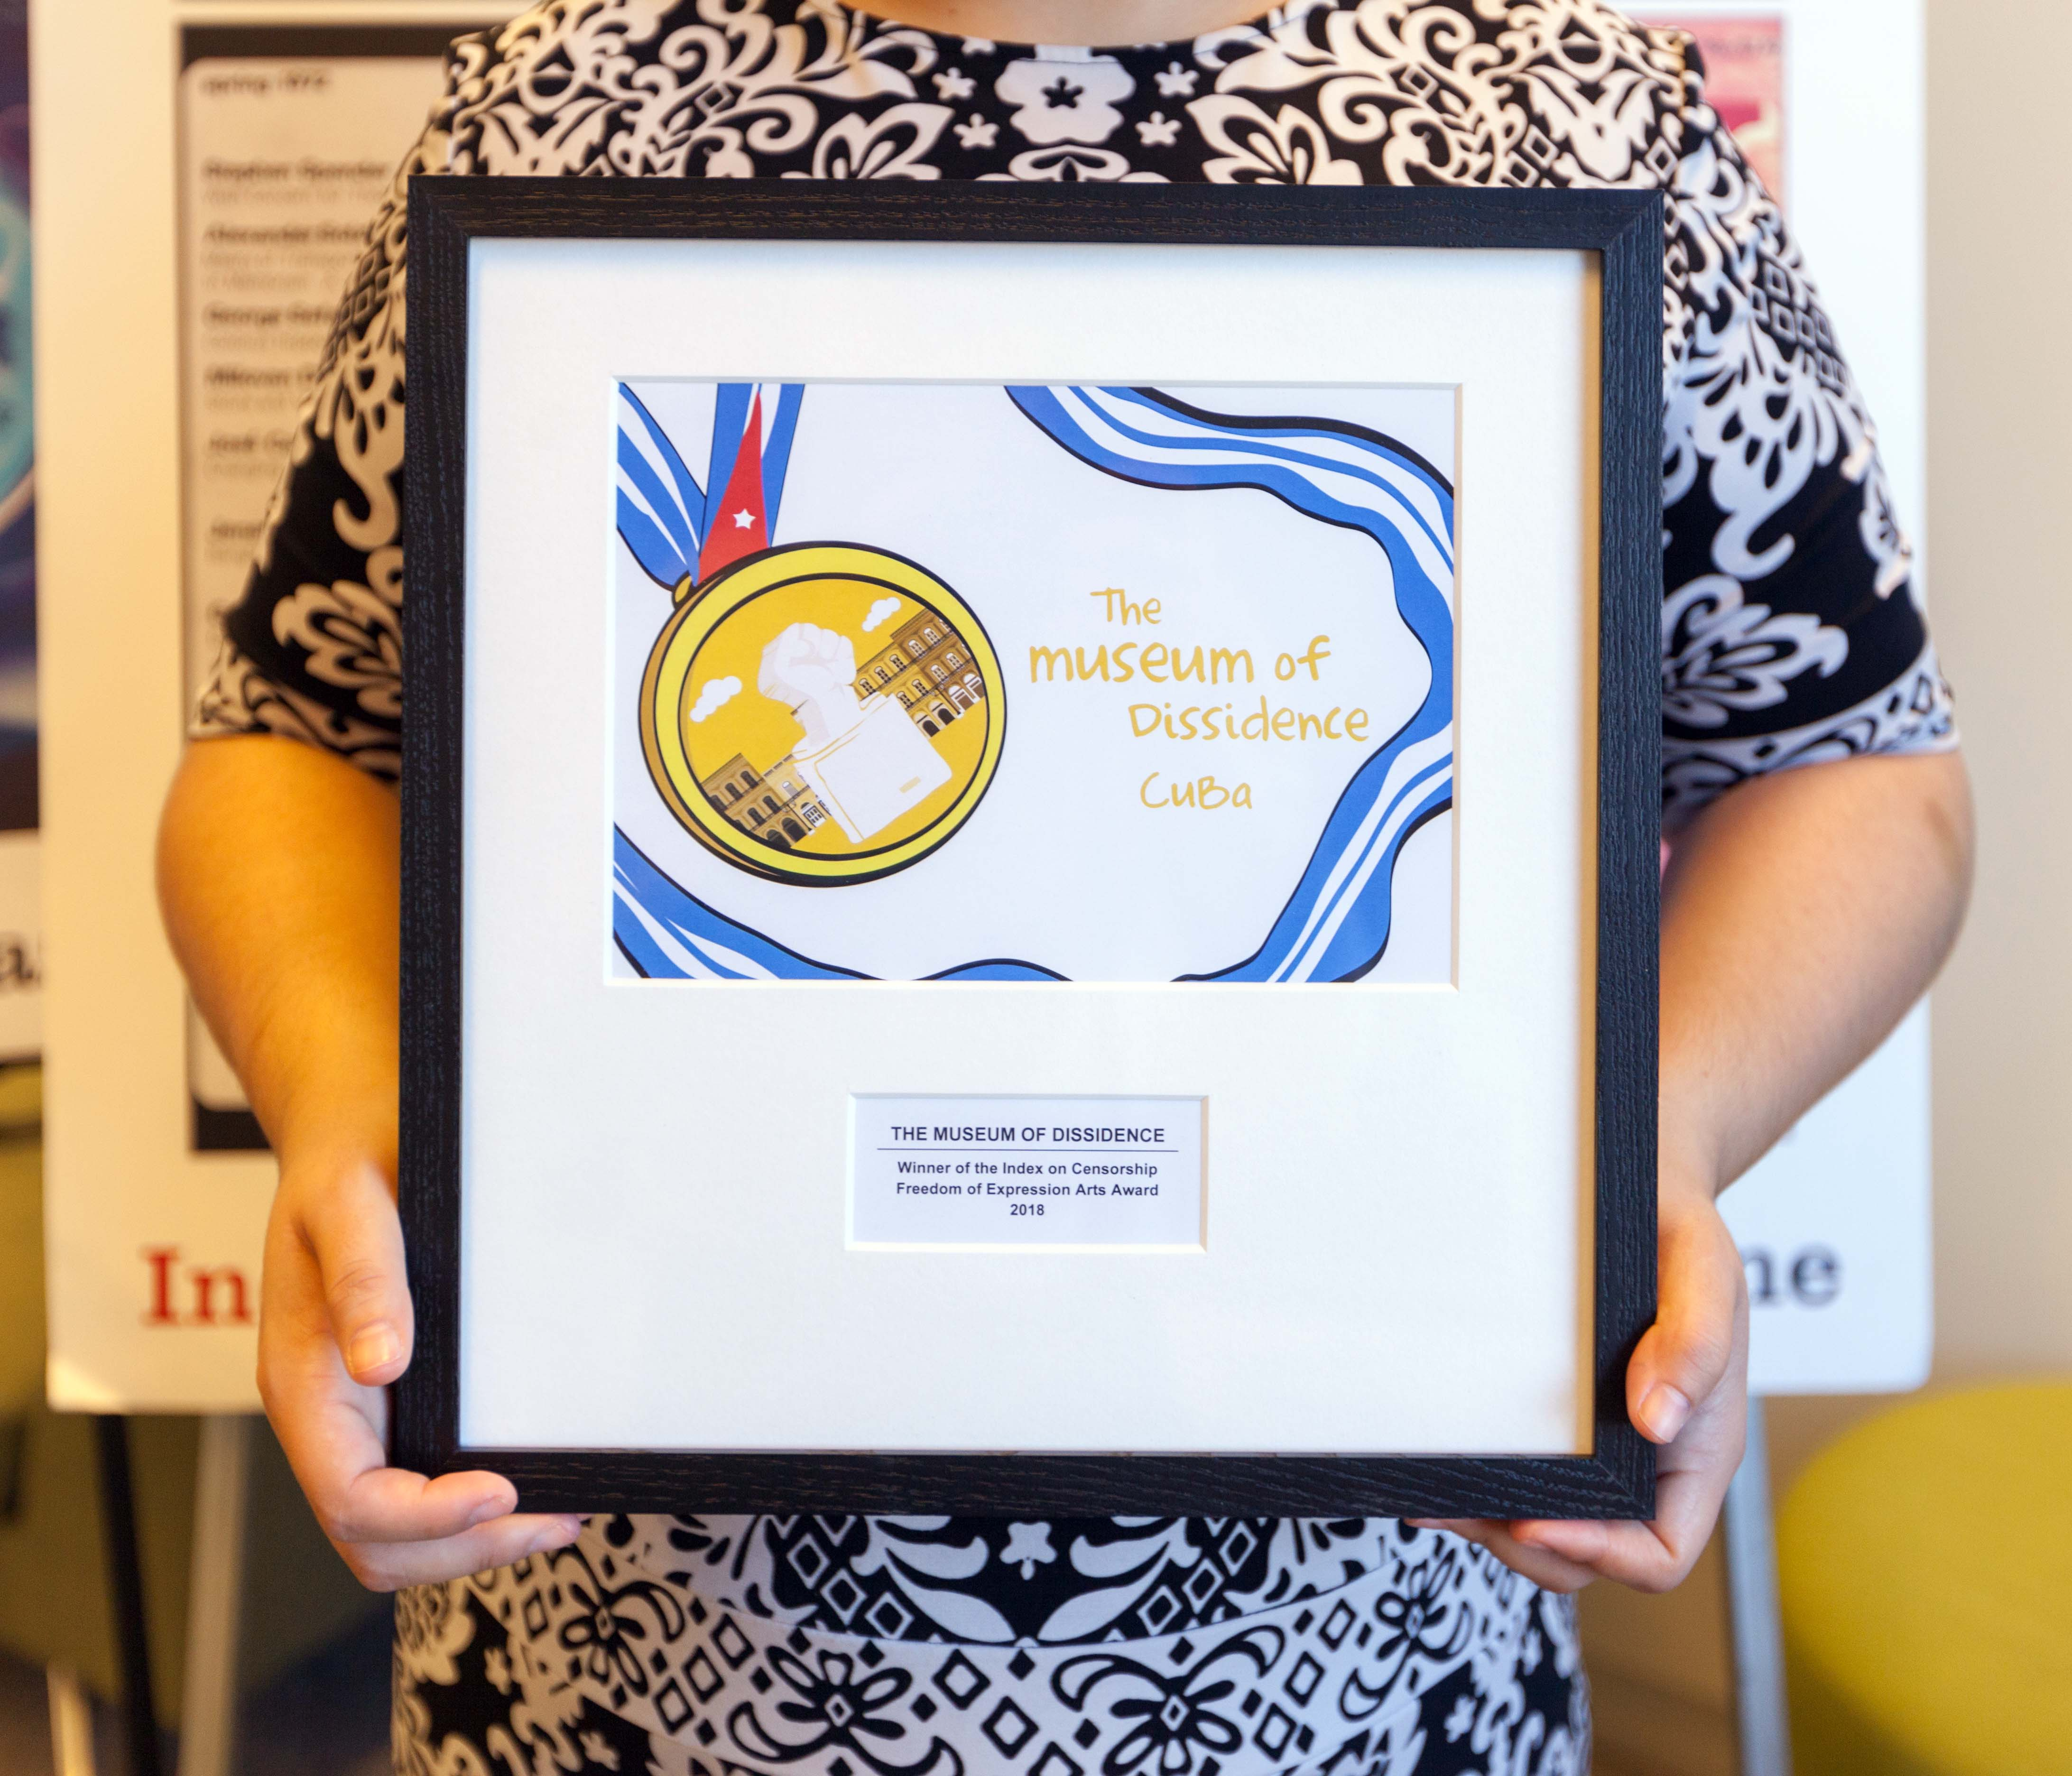 Perla Hinojosa, Fellowship and Advocacy Officer at Index on Censorship, holds the 2018 Freedom of Expression Arts Award for Cuban arts collective Museum of Dissidence, who could not attend the Freedom of Expression Awards. (Photo: Index on Censorship)